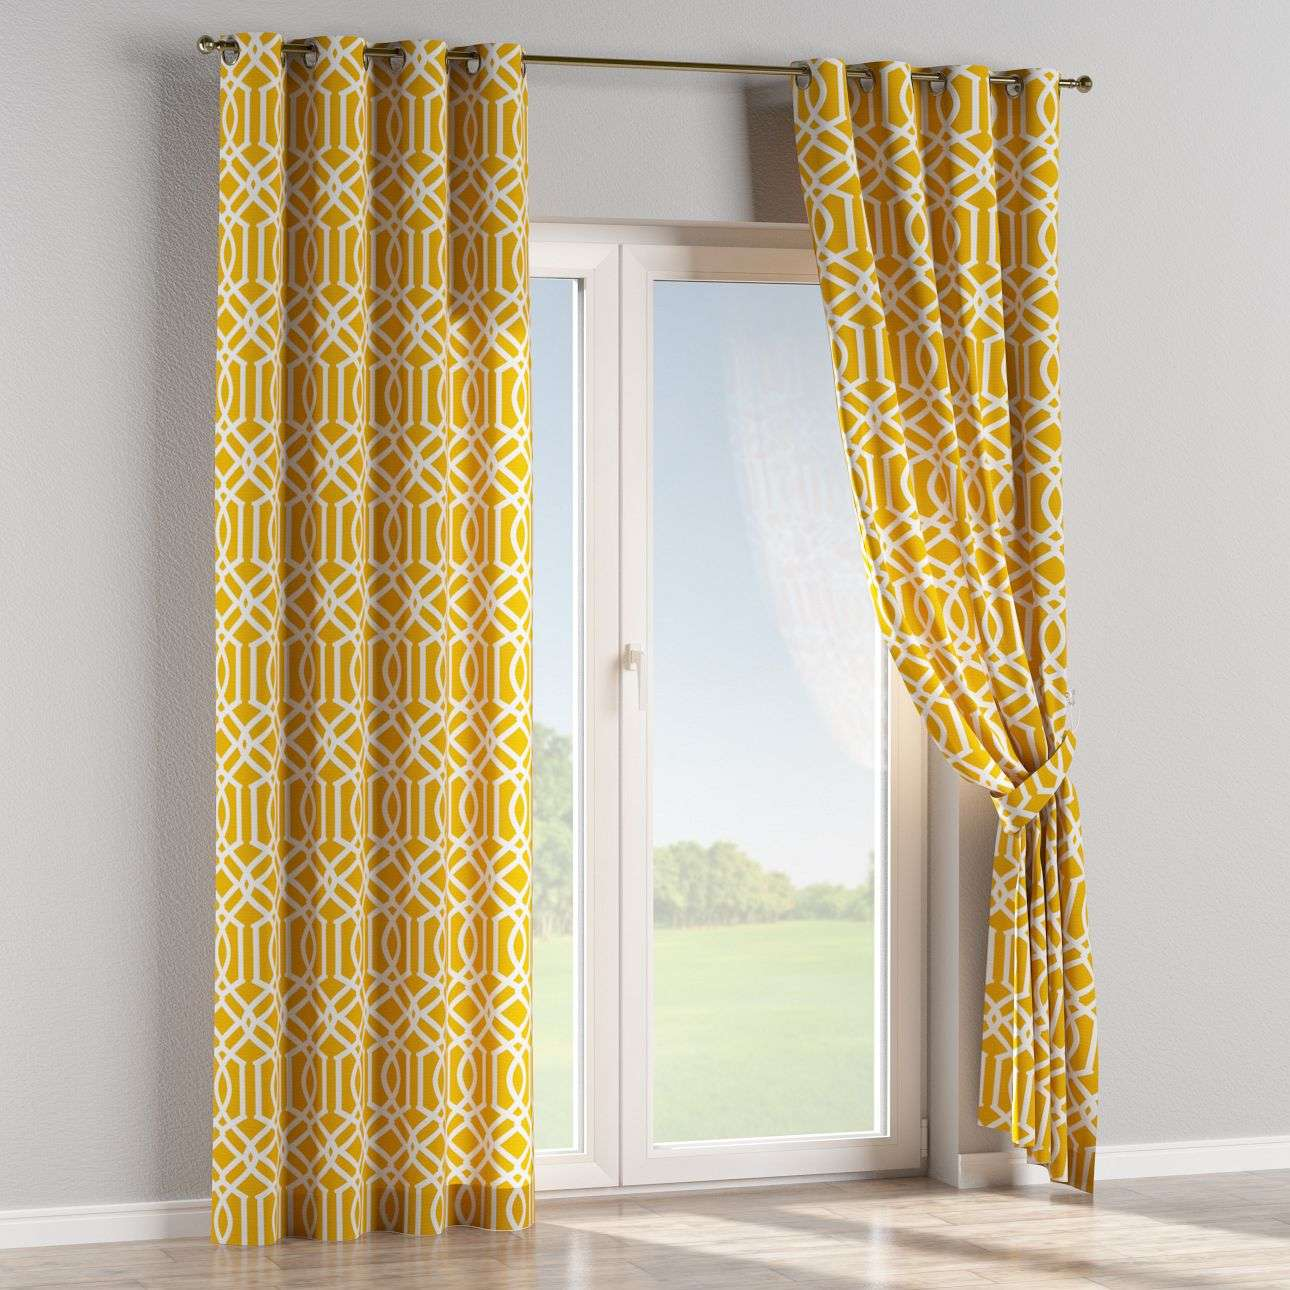 Eyelet curtains 130 x 260 cm (51 x 102 inch) in collection Comic Book & Geo Prints, fabric: 135-09